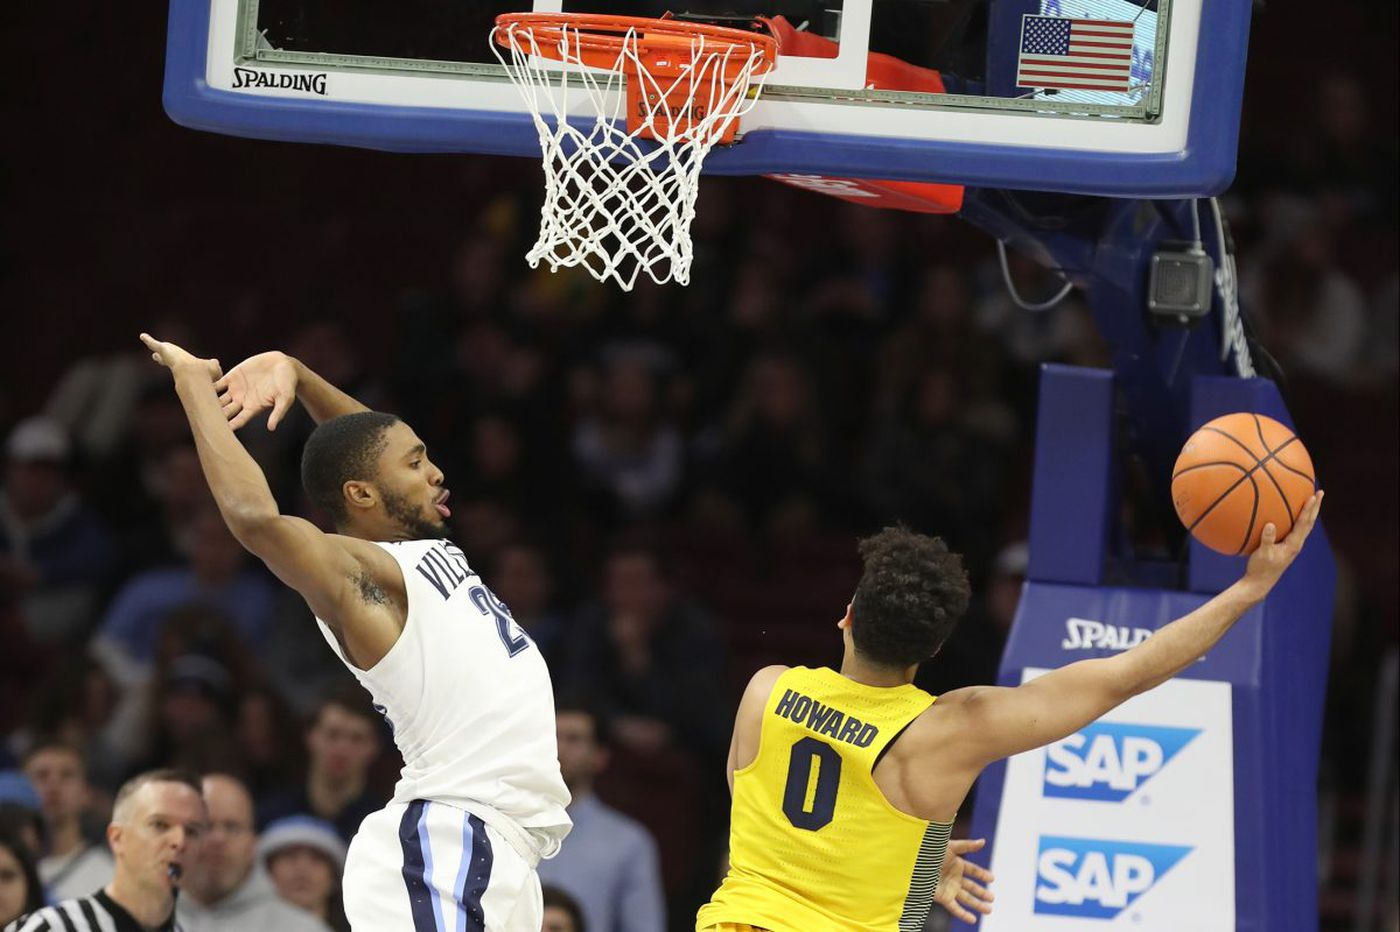 In Big East basketball, it's hard to stop teams from scoring